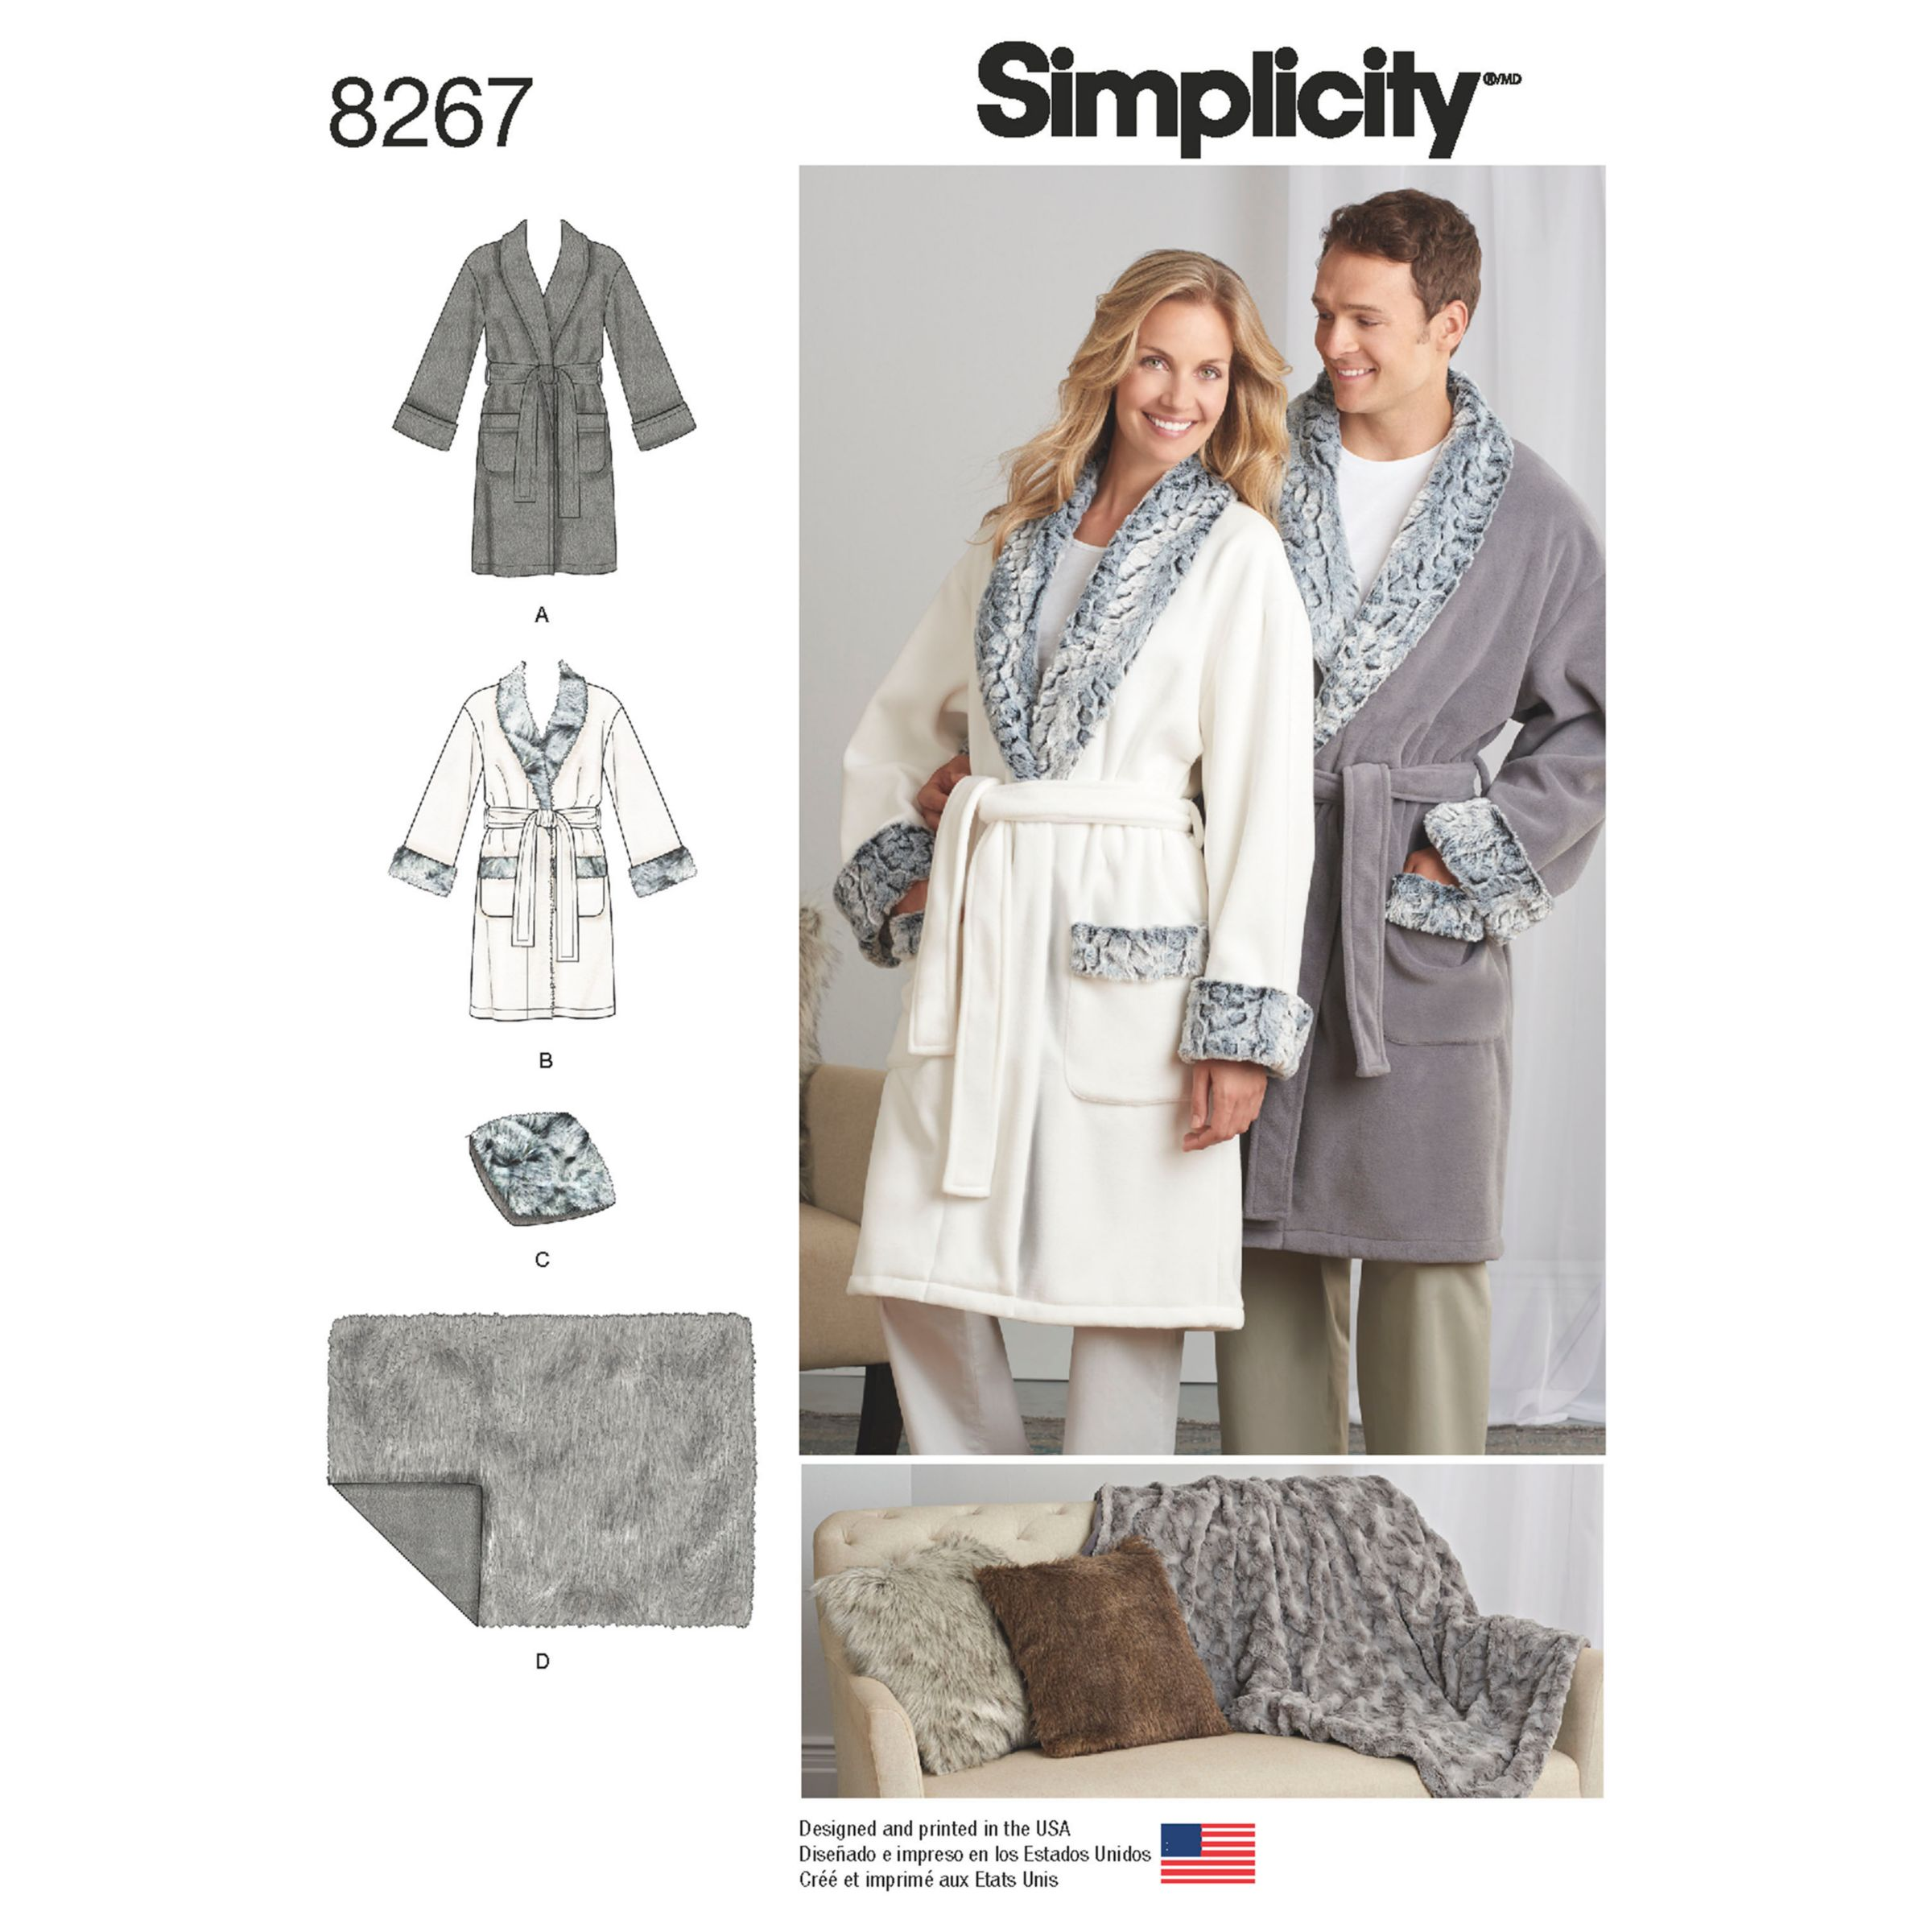 Simplicity Simplicity Unisex Robes, Loungewear and Sleepwear Sewing Pattern, 8267, A